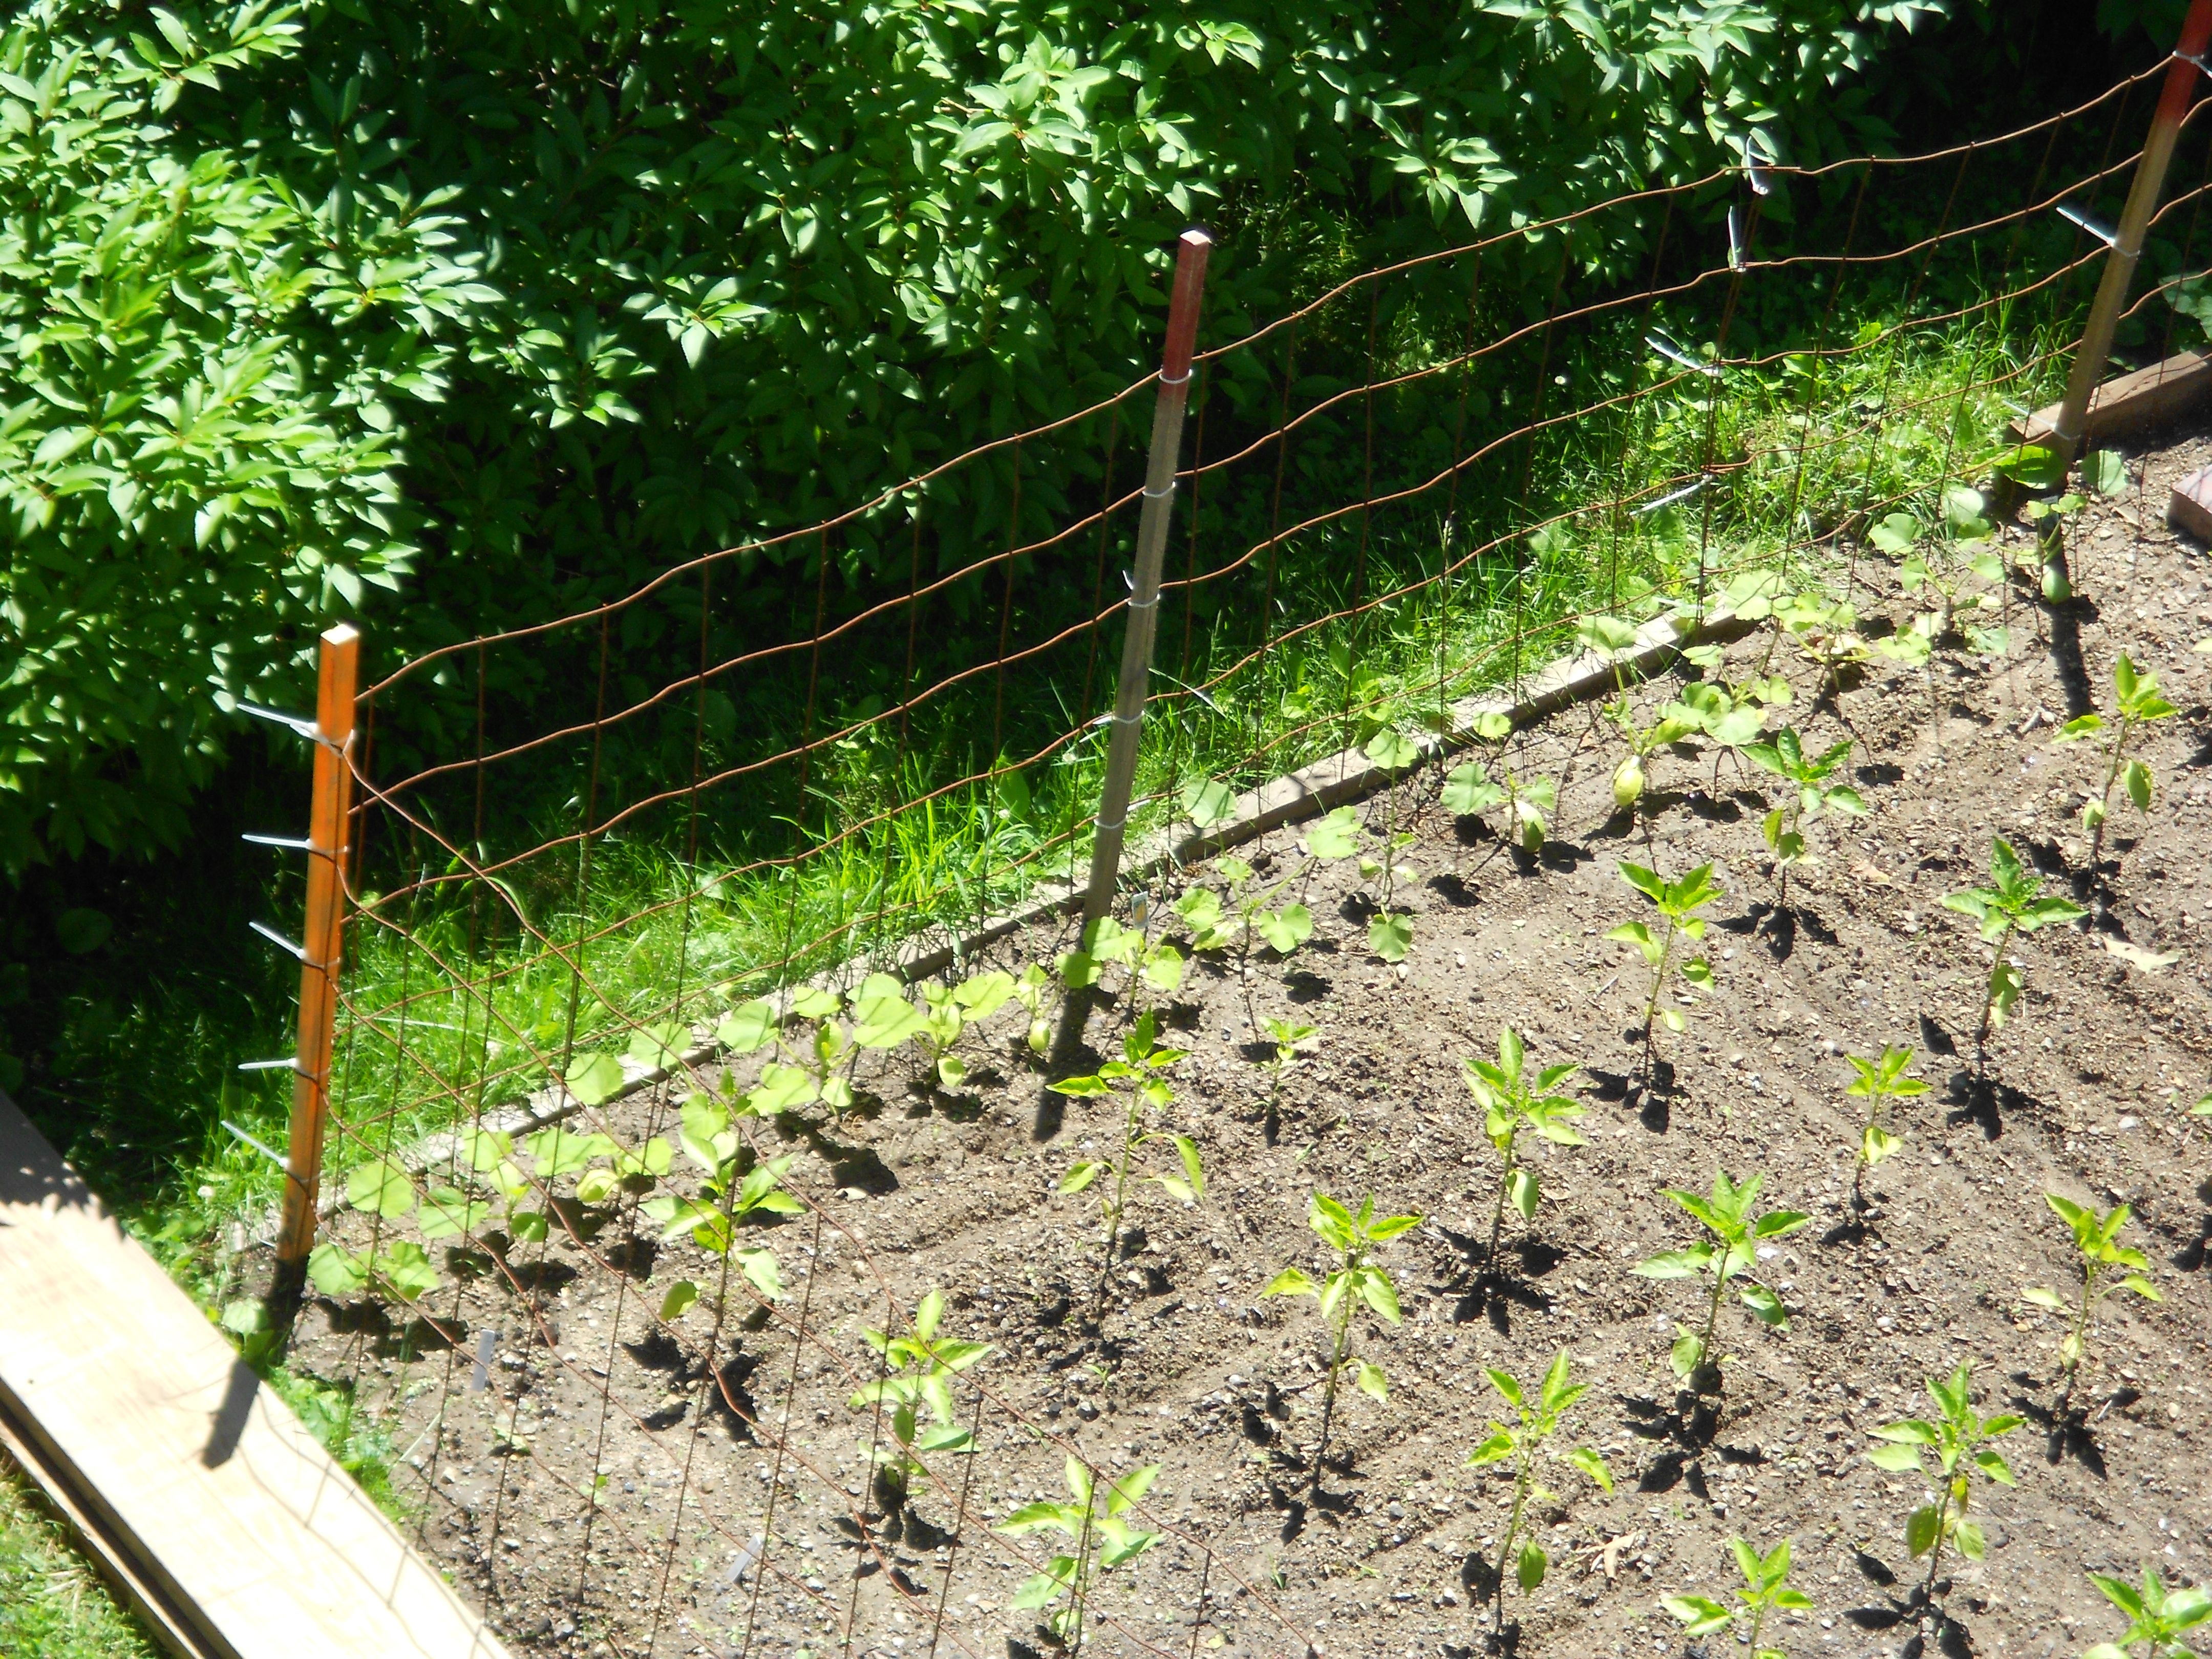 June 15: Zucchini and yellow squash climbing towards the fence.